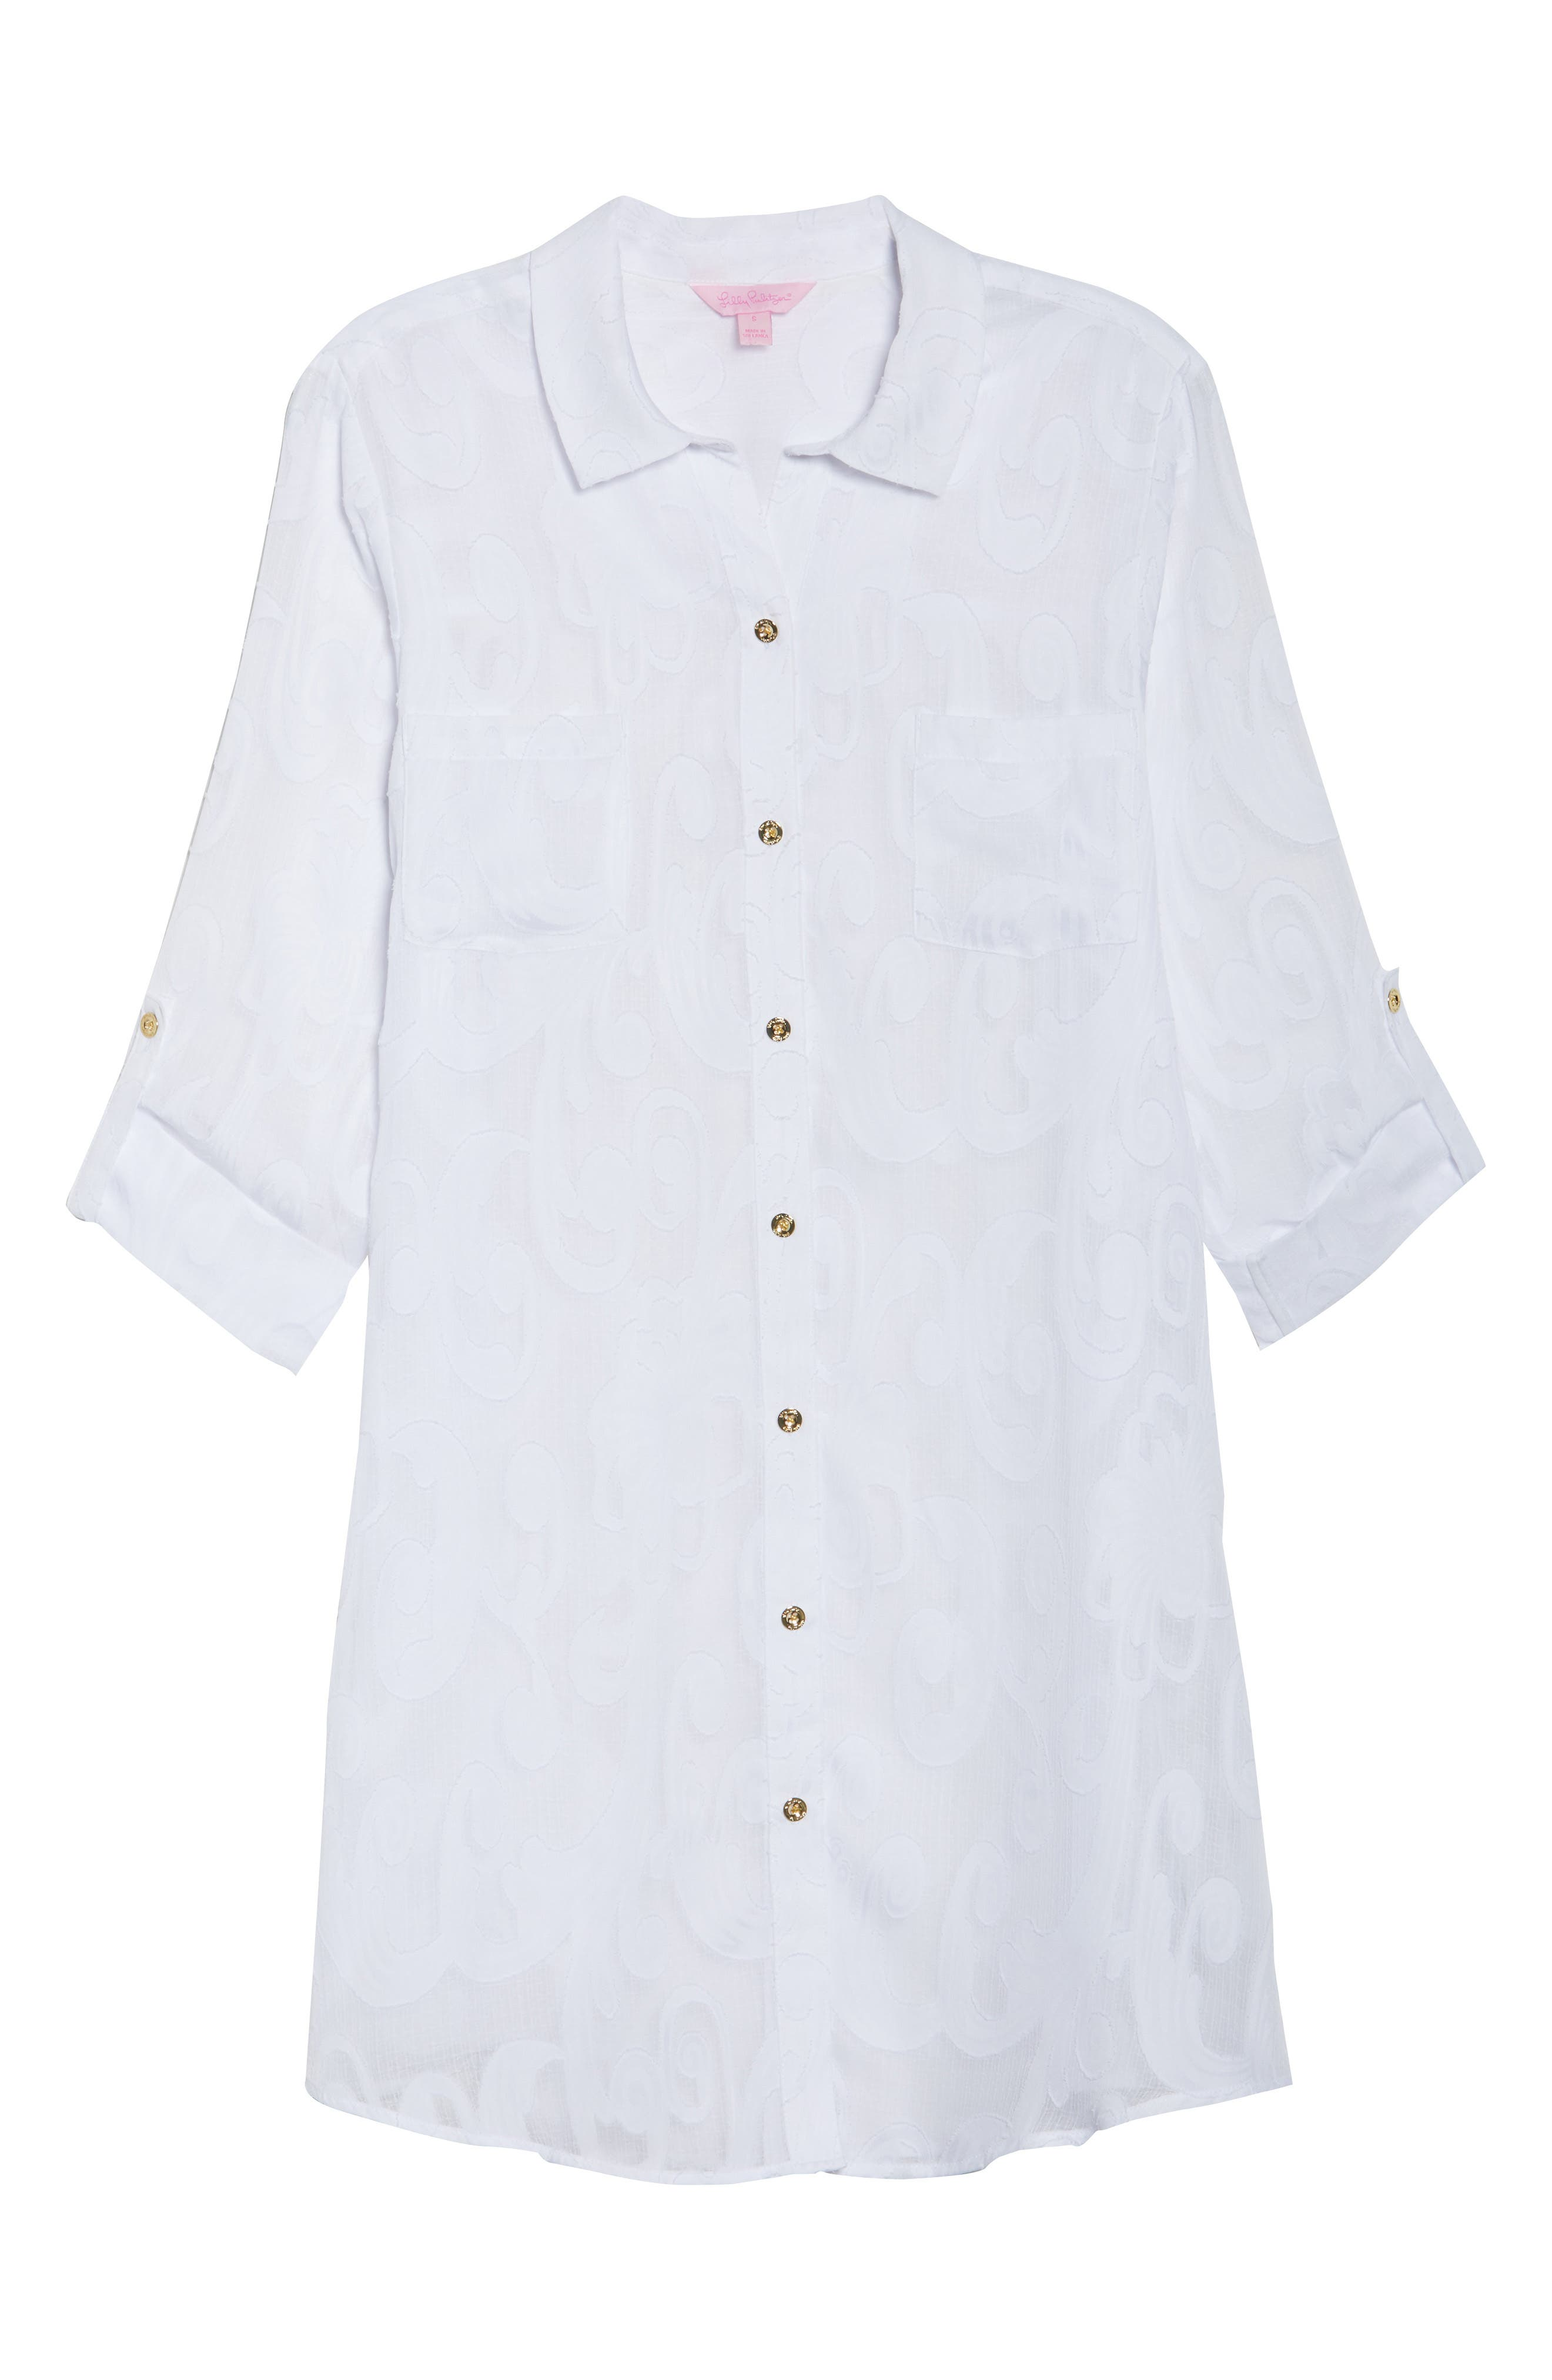 Natalie Shirtdress Cover-Up,                             Alternate thumbnail 6, color,                             Resort White Poly Crepe Swirl